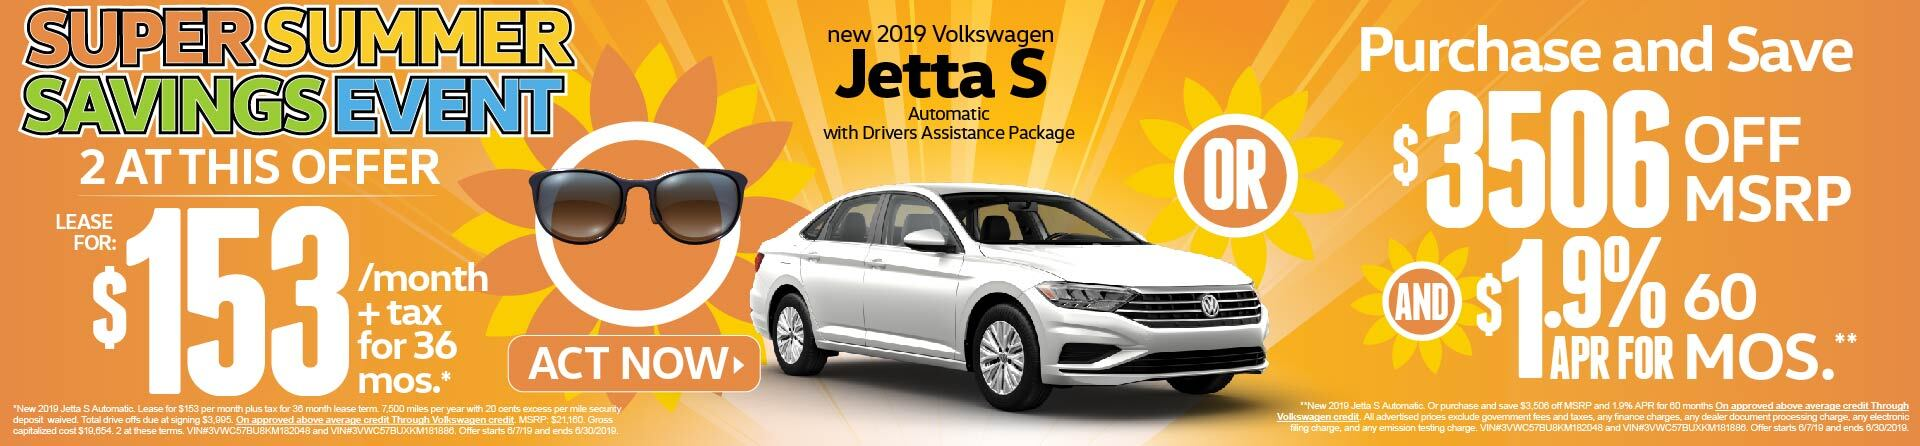 Summer Savings Event Jetta